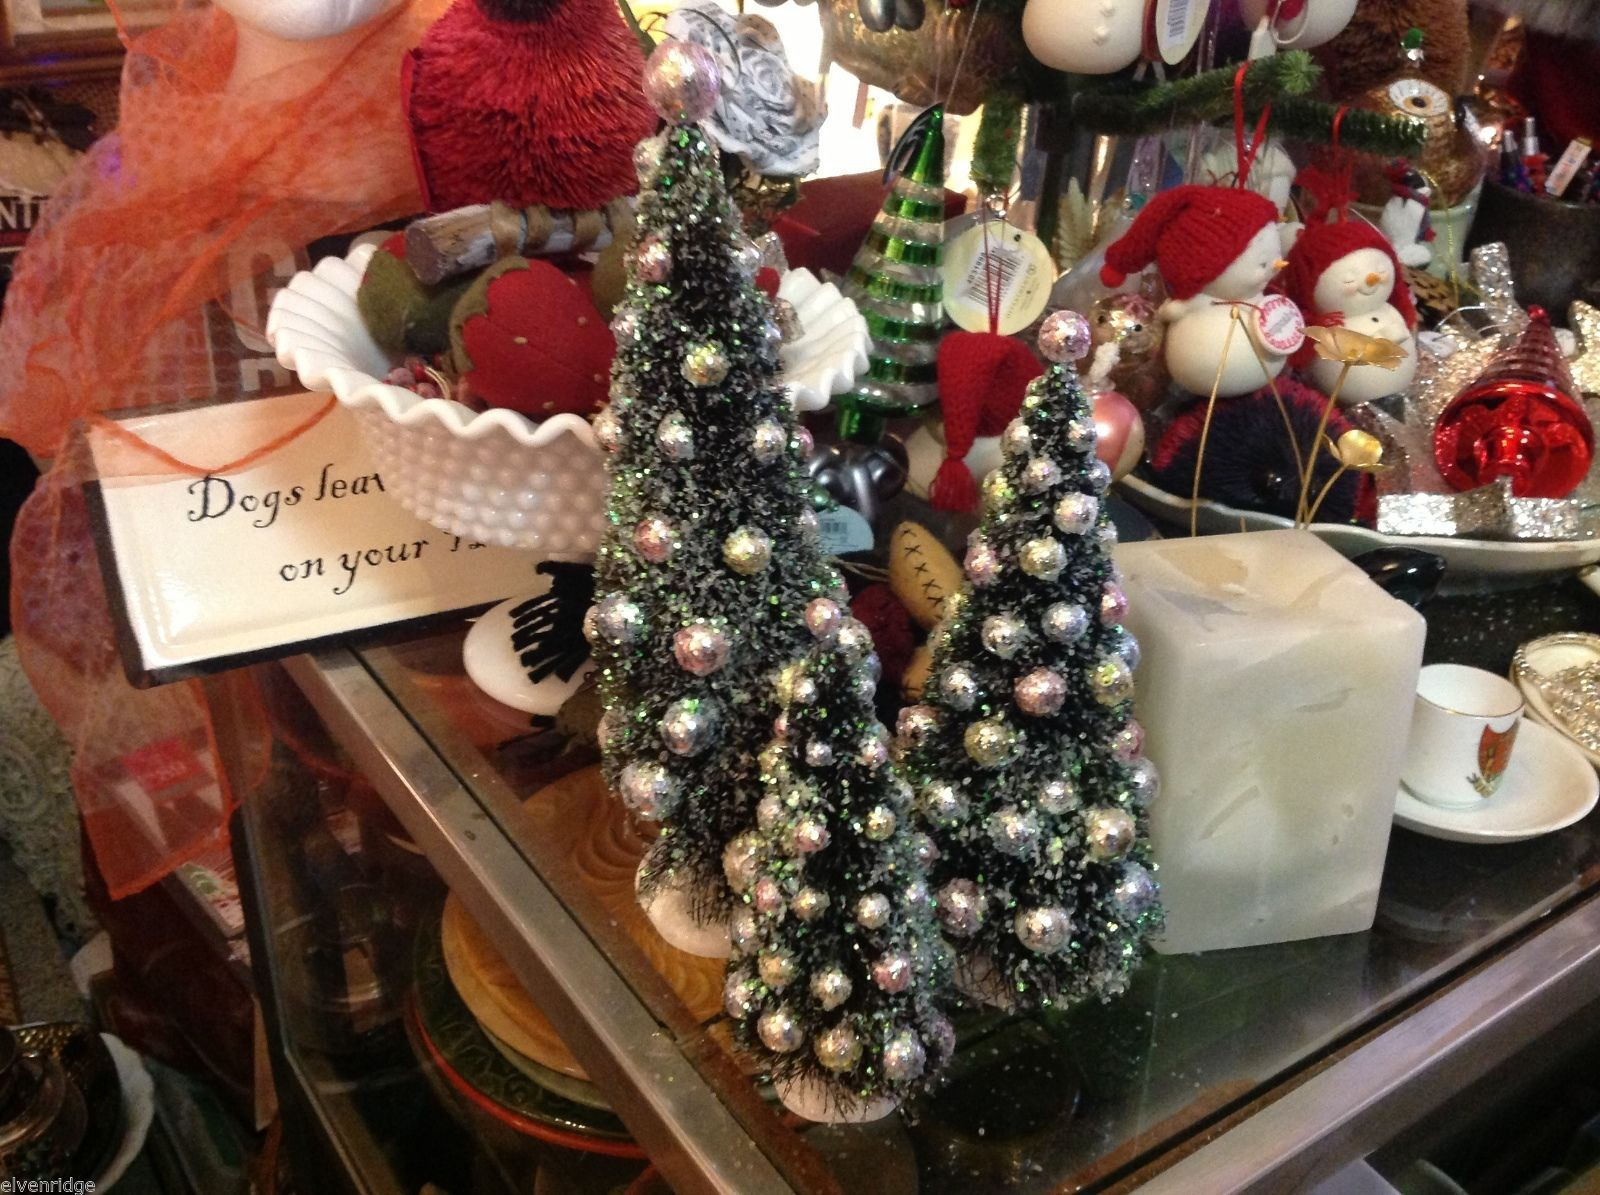 Miniature Christmas tree with ornaments perfect for office or apartment